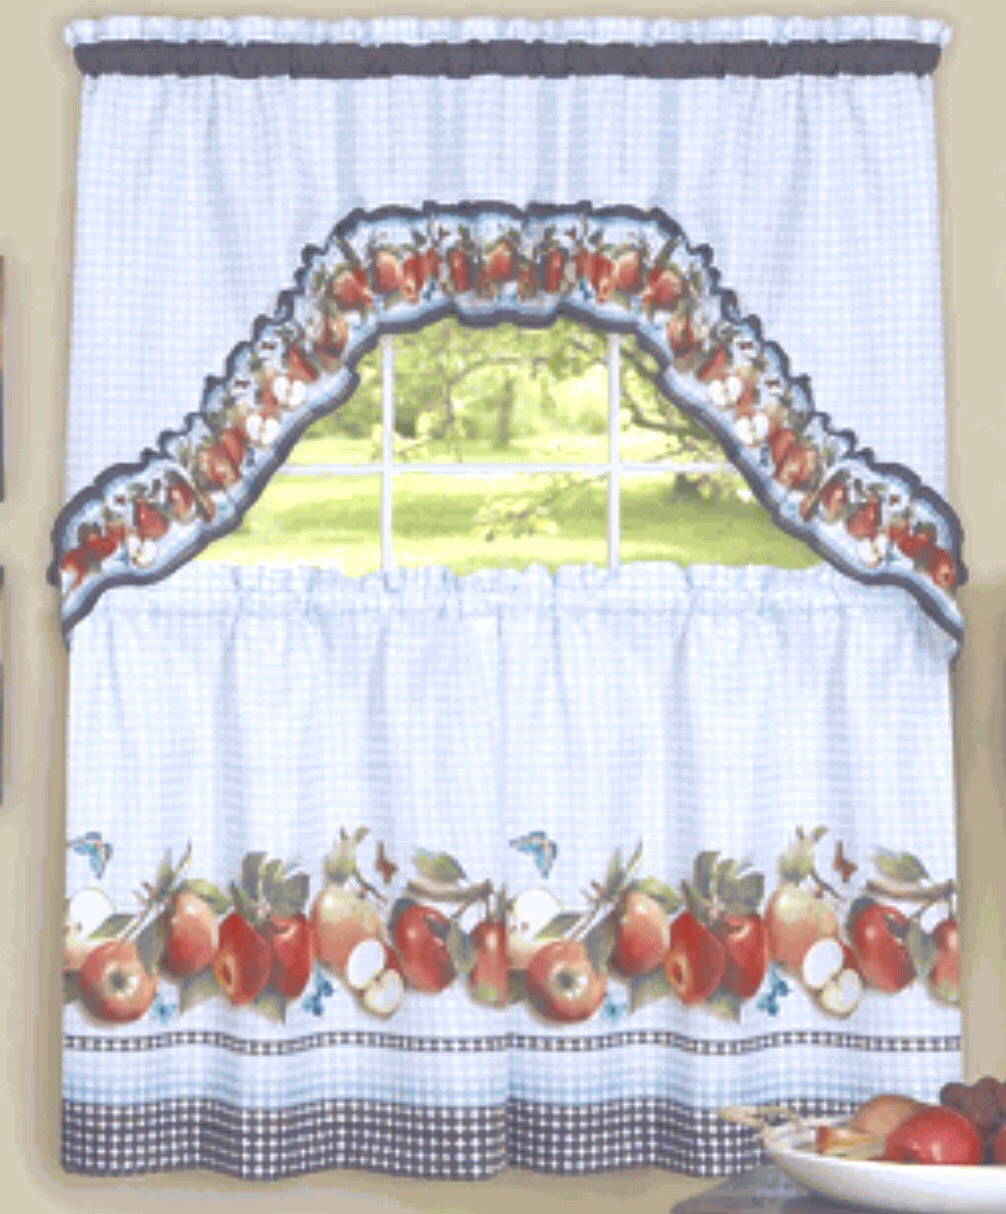 Thanksgiving Kitchen Curtains Gckg Thanksgiving Window Curtain Happy Thanksgiving Day Harvest Pumpkin Grommet Blackout Curtain Room Darkening Curtains For Bedroom And Kitchen Size 52 W X 84 H Inches Two Piece Walmart